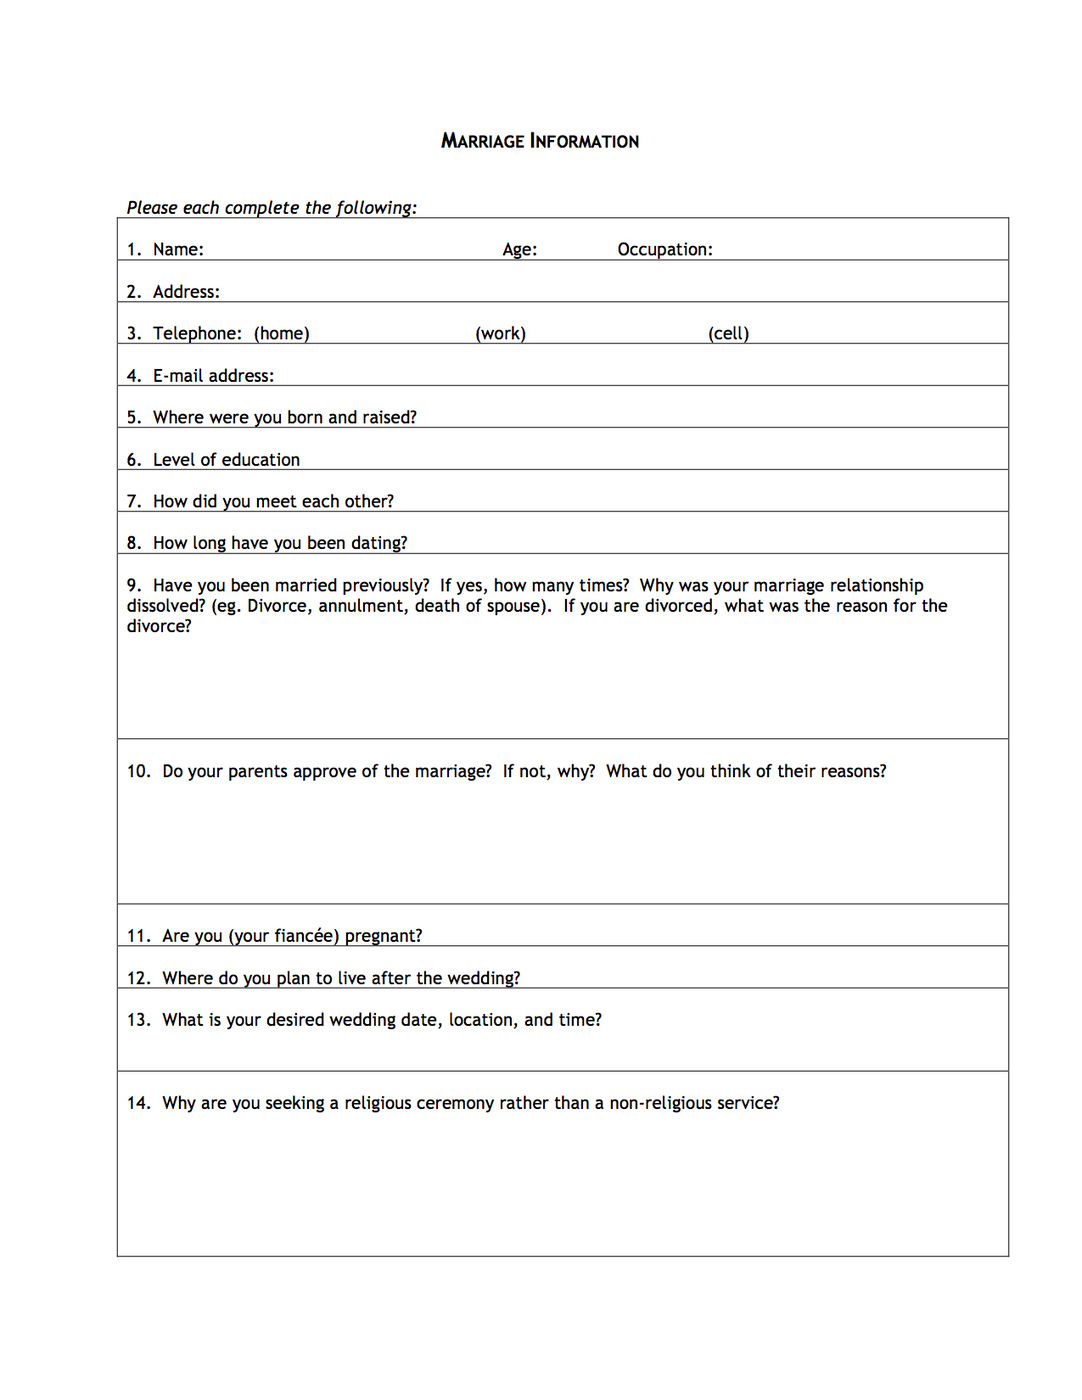 marriage information form